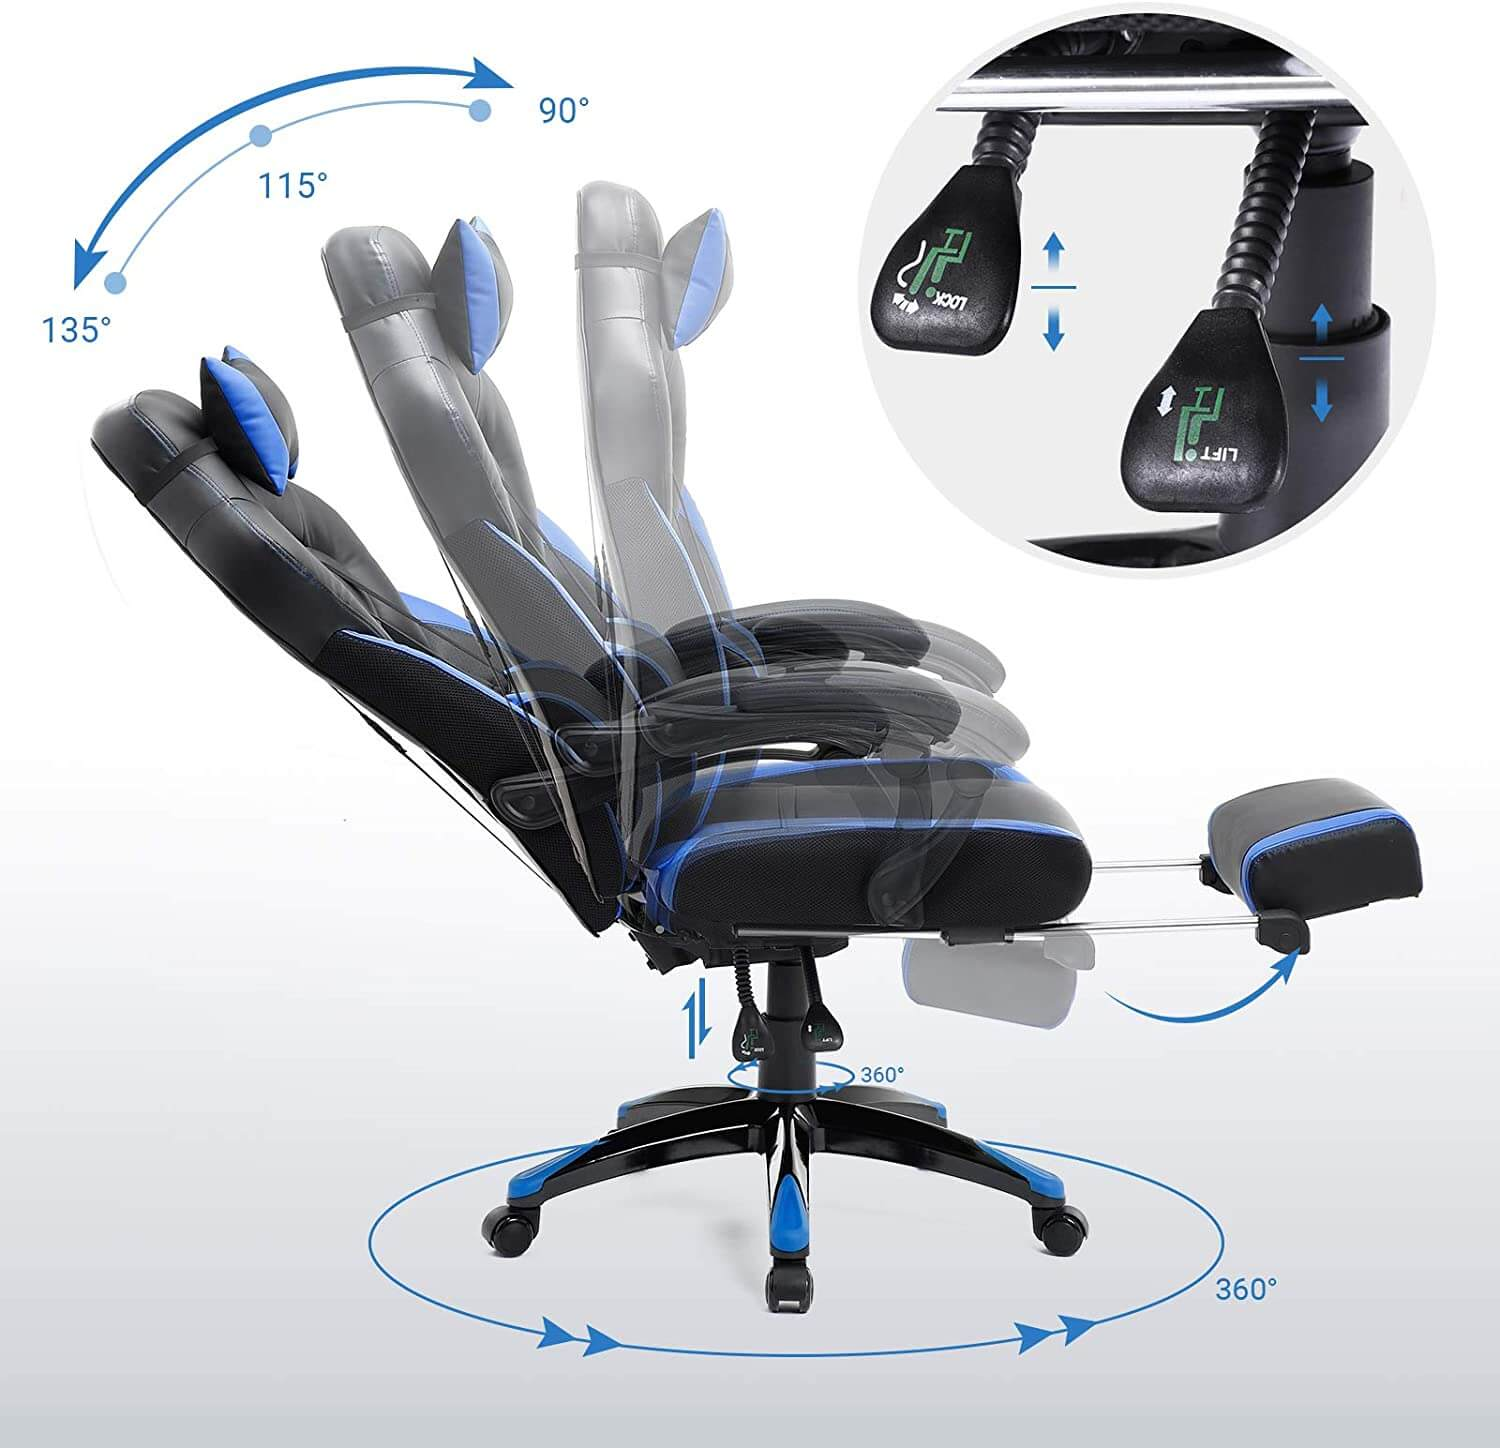 songmics racing ergonomic chair with S-shaped backrest